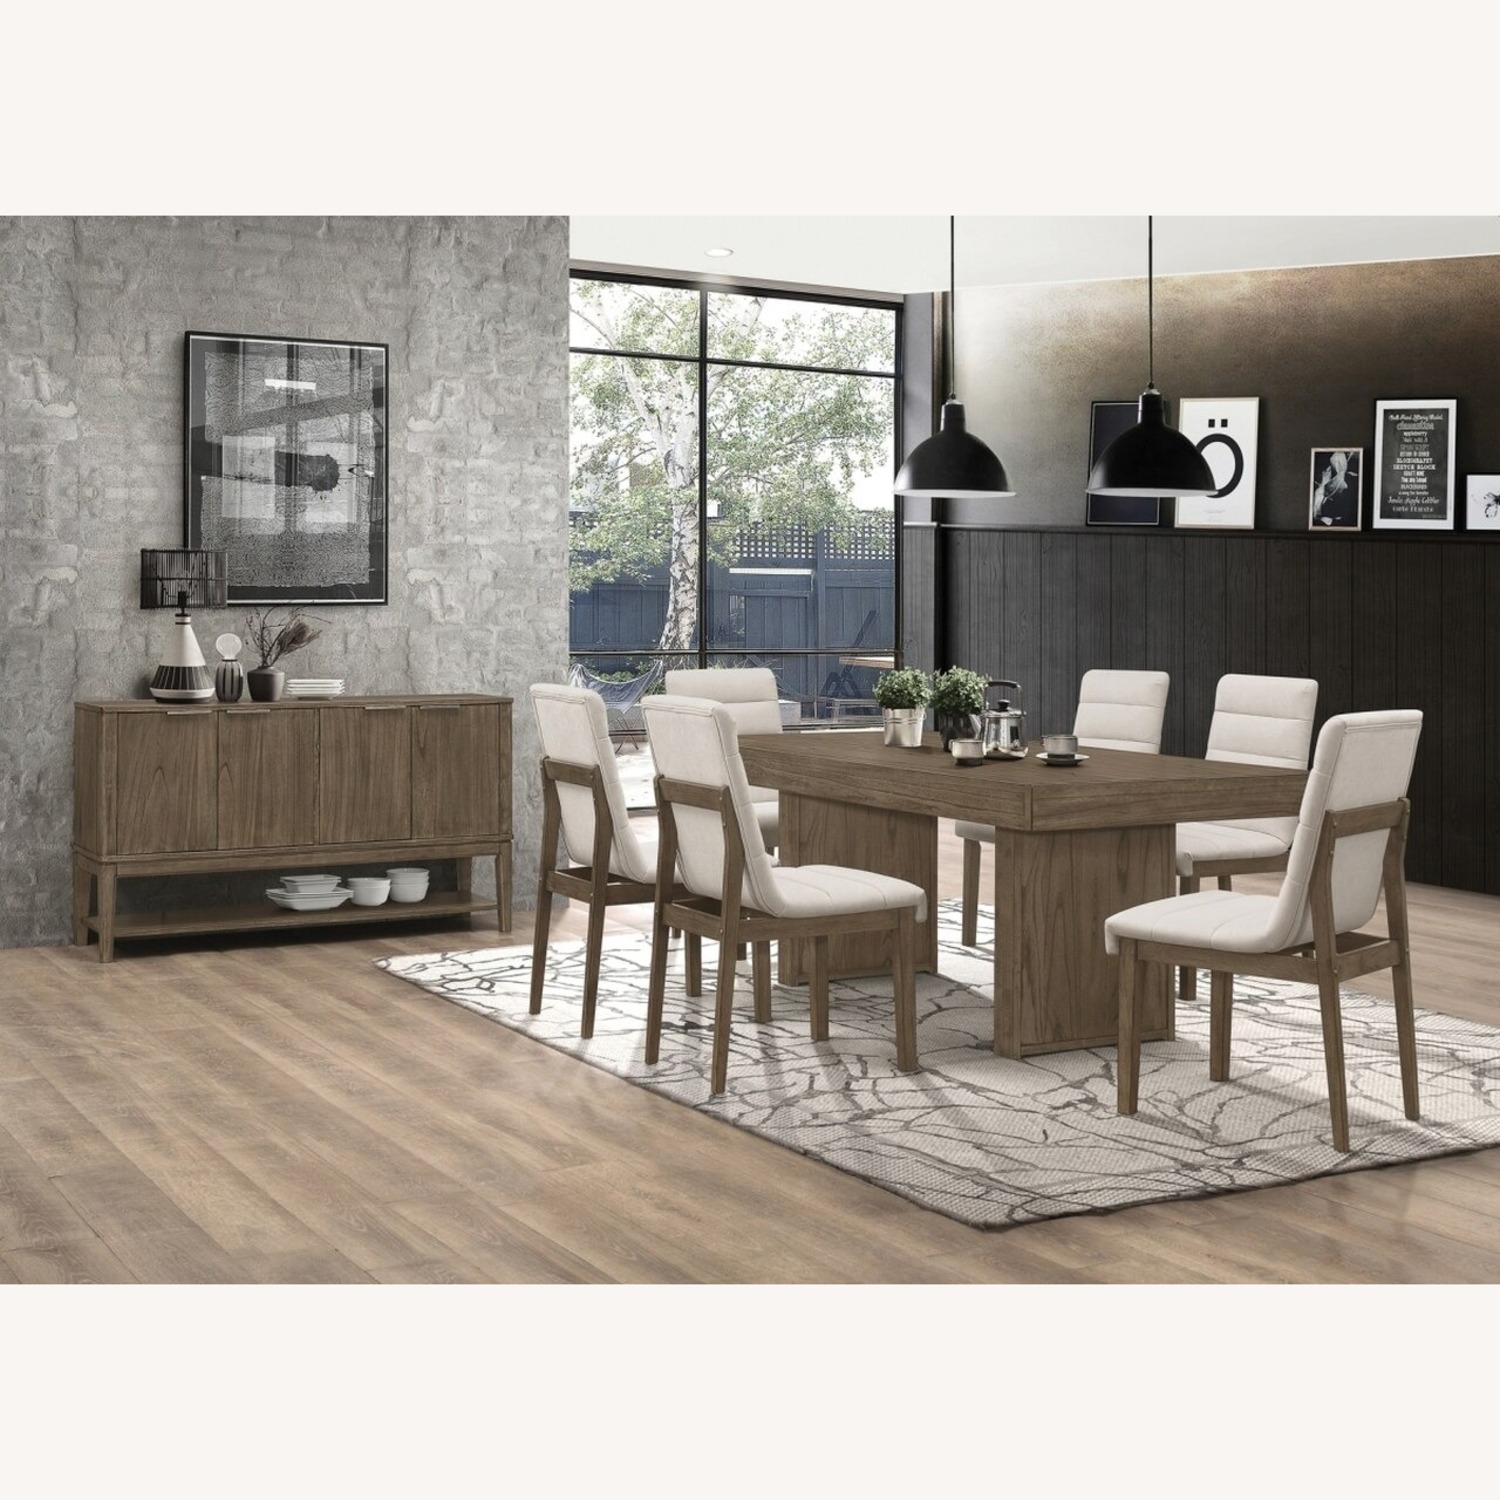 Dining Table Made From Wheat Brown Hardwood - image-3